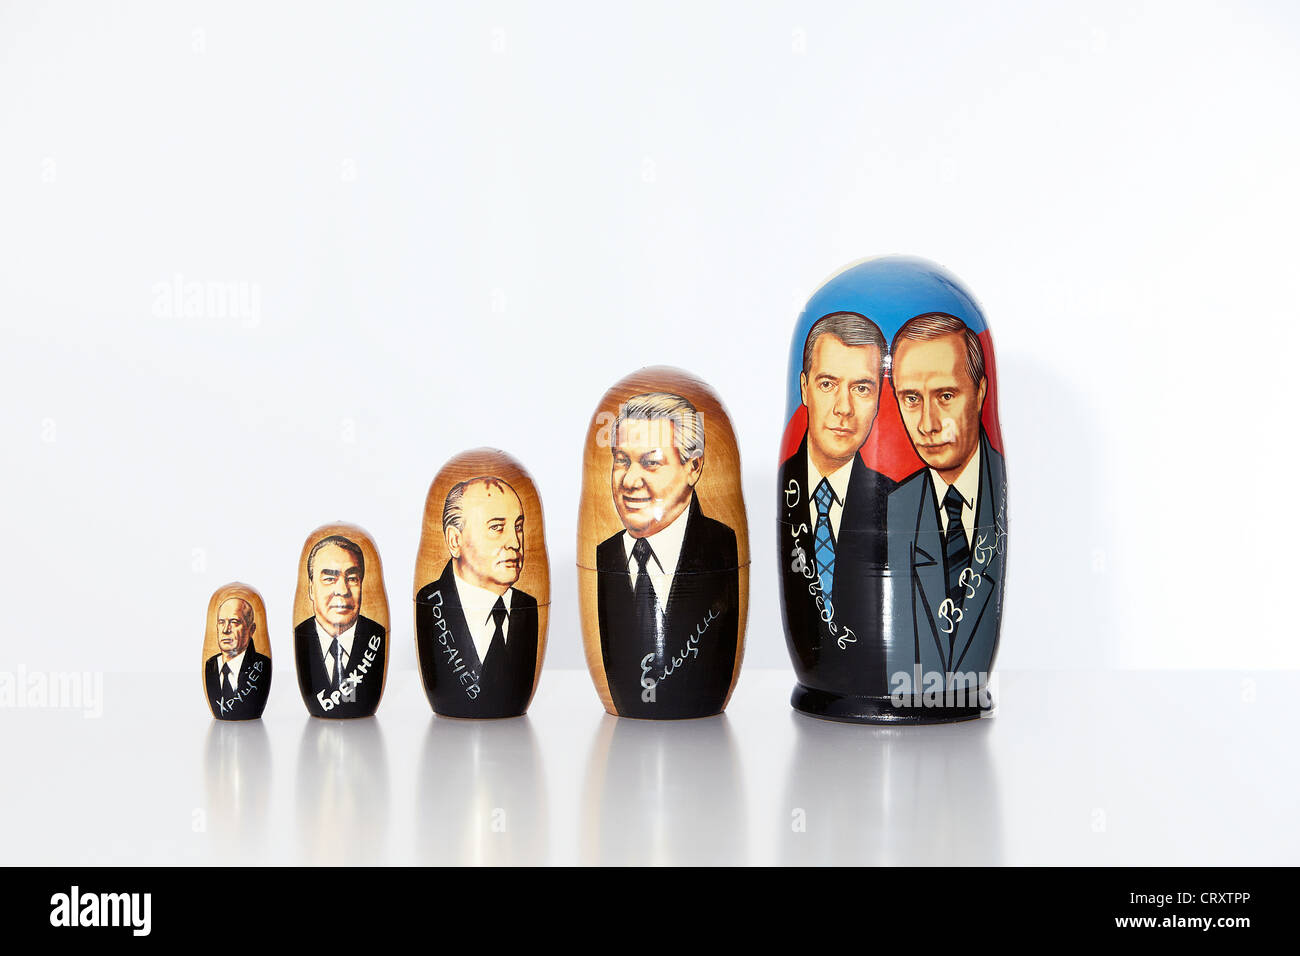 Matryoshka showing pictures of Russian Presidents - Stock Image